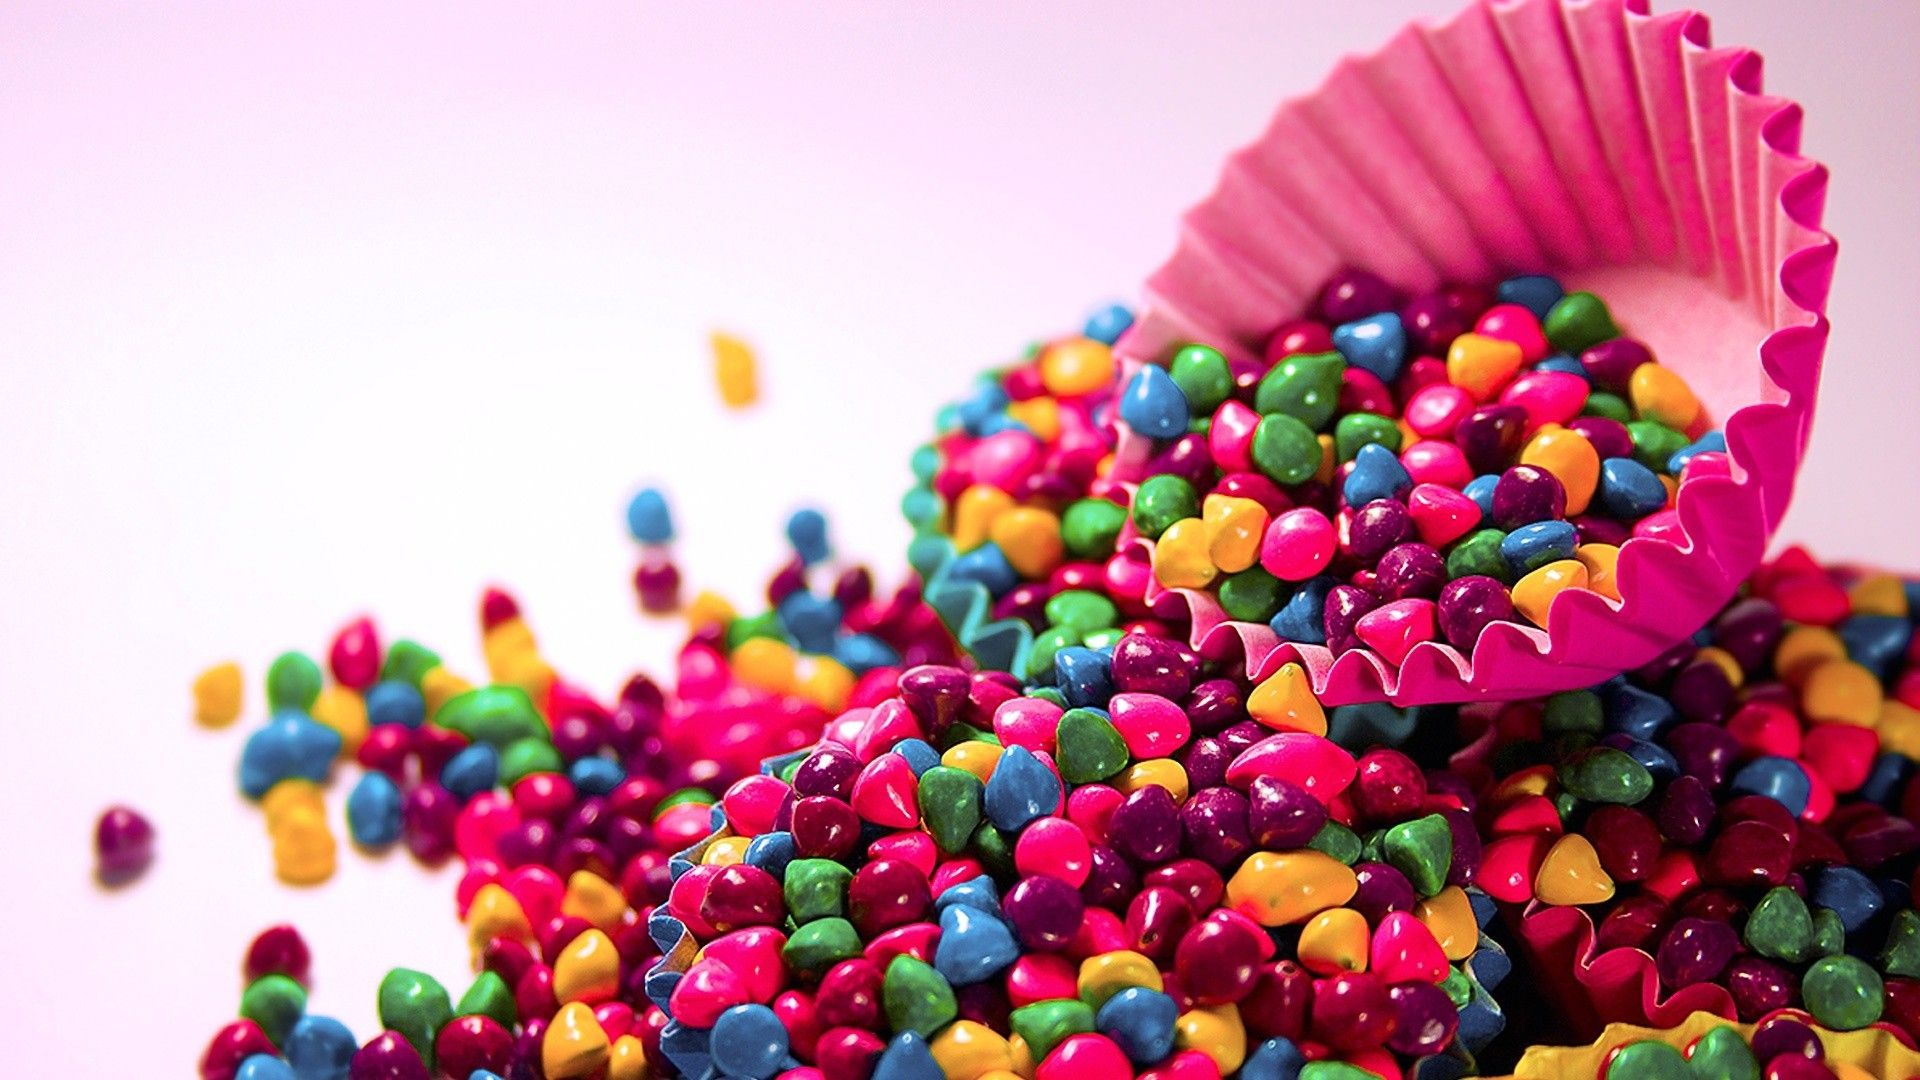 Food and Drink Rainbow Candy Wallpaper HD 25977 Hd Background 1920x1080